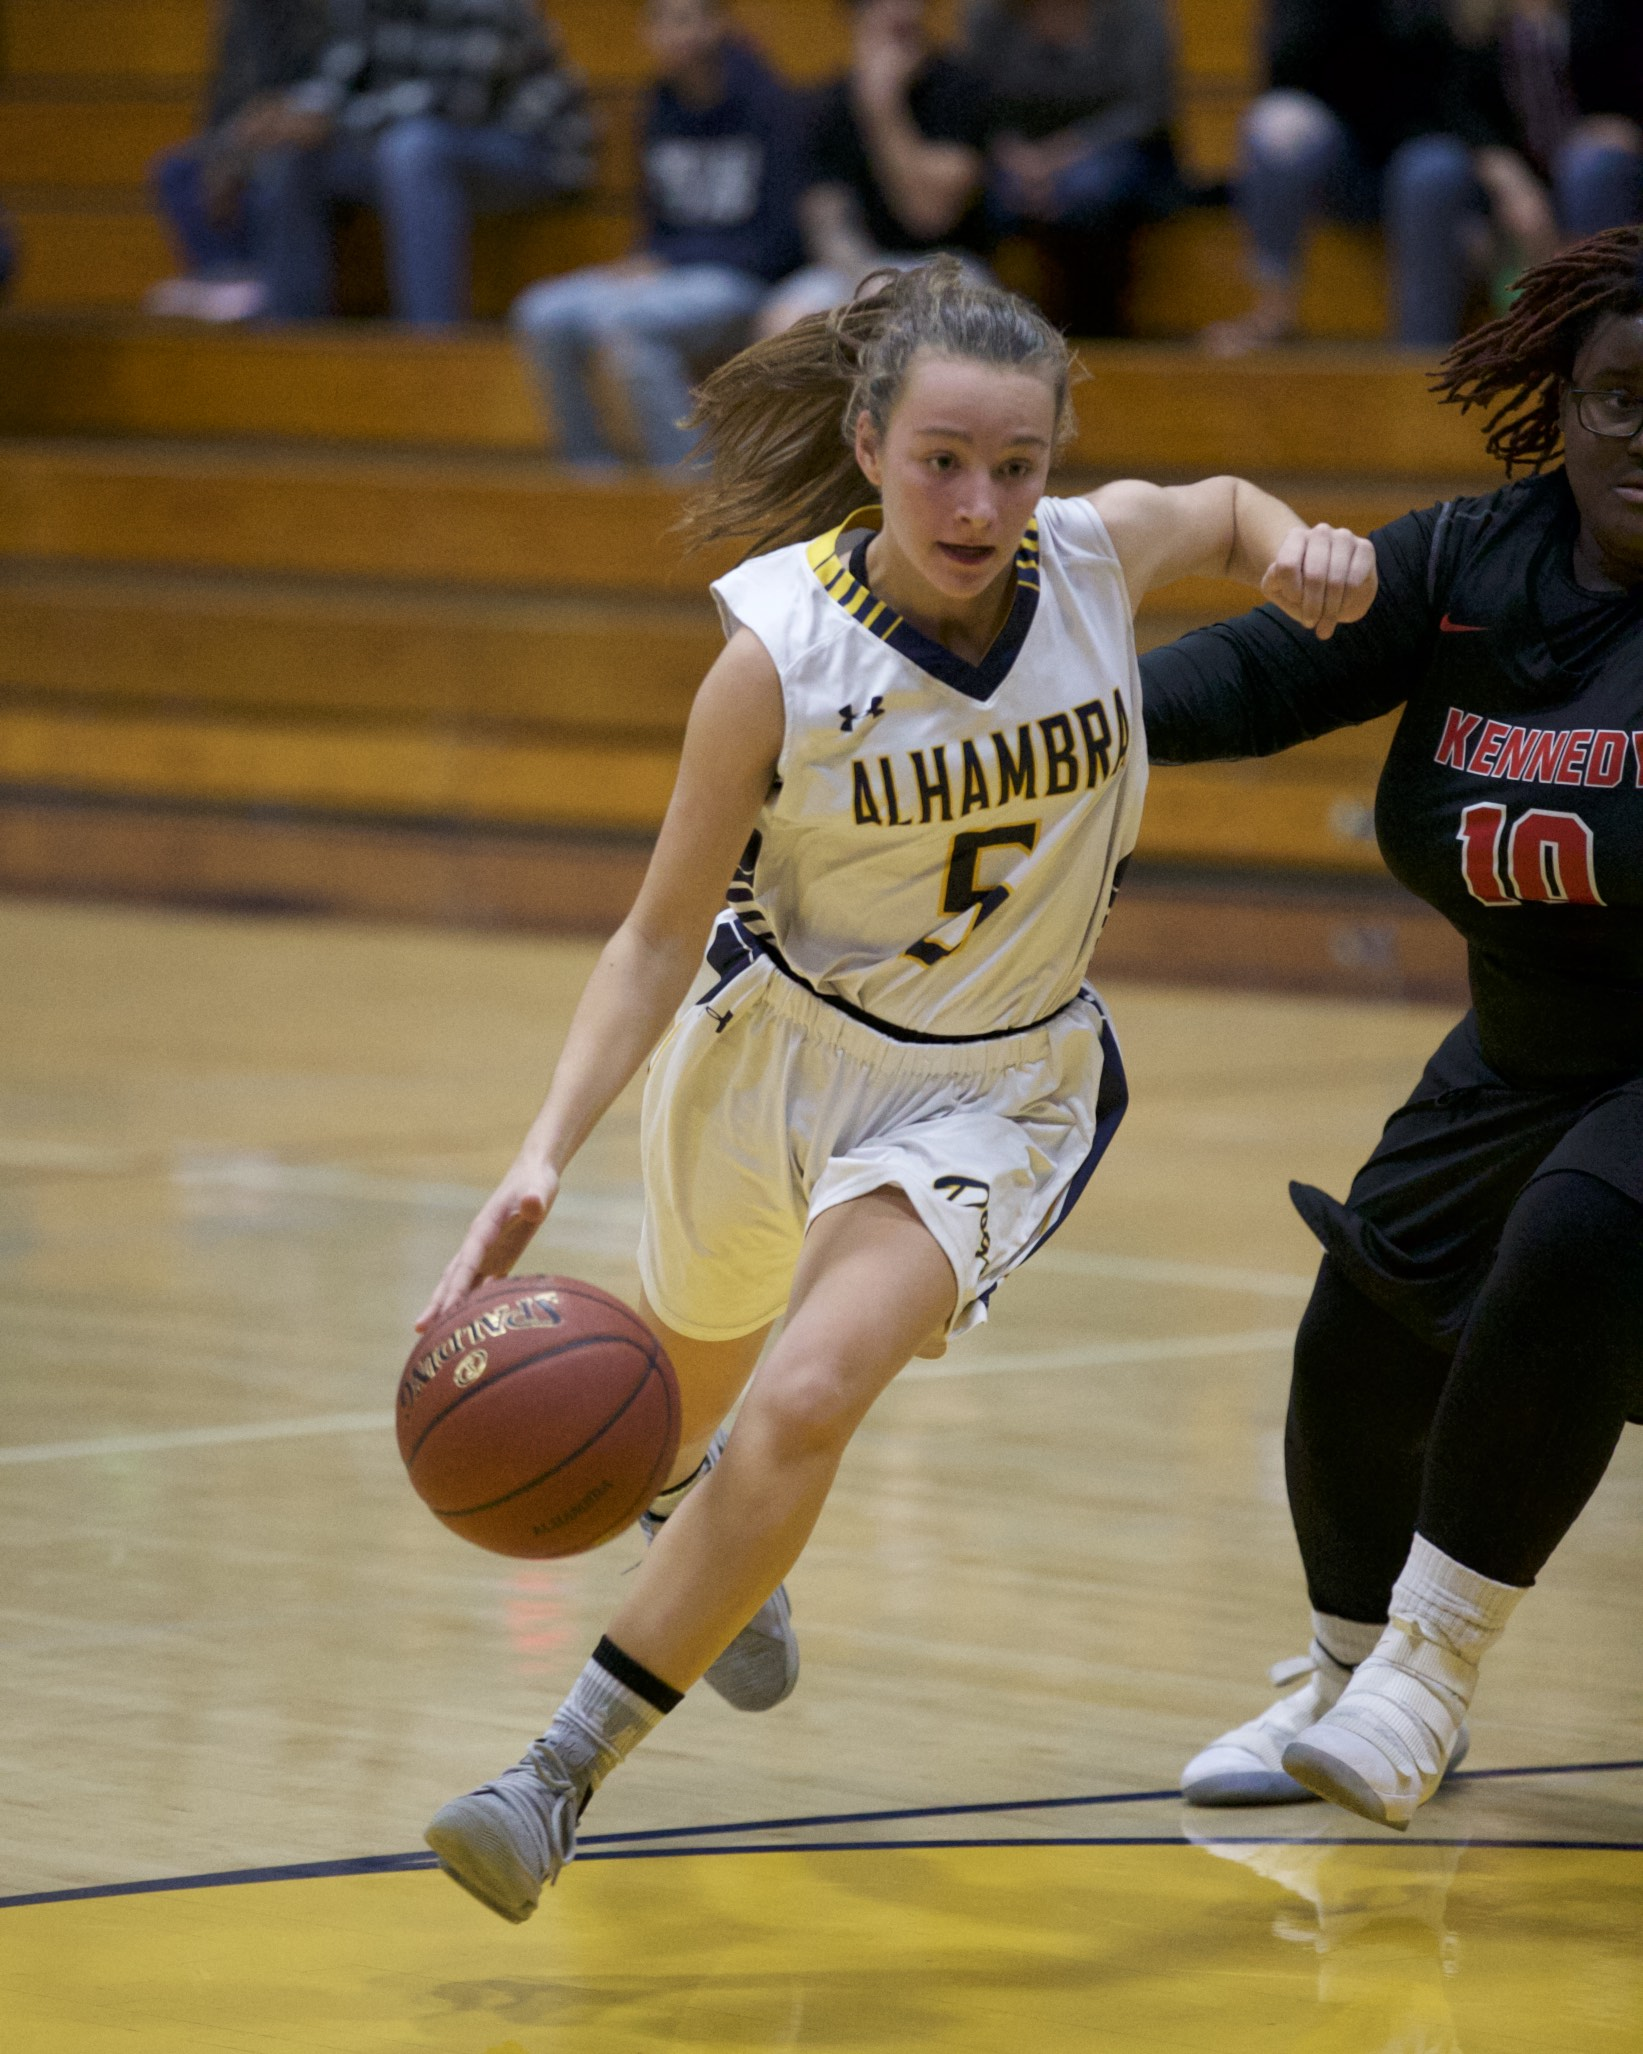 Alhambra Women's basketball vs Kennedy High School